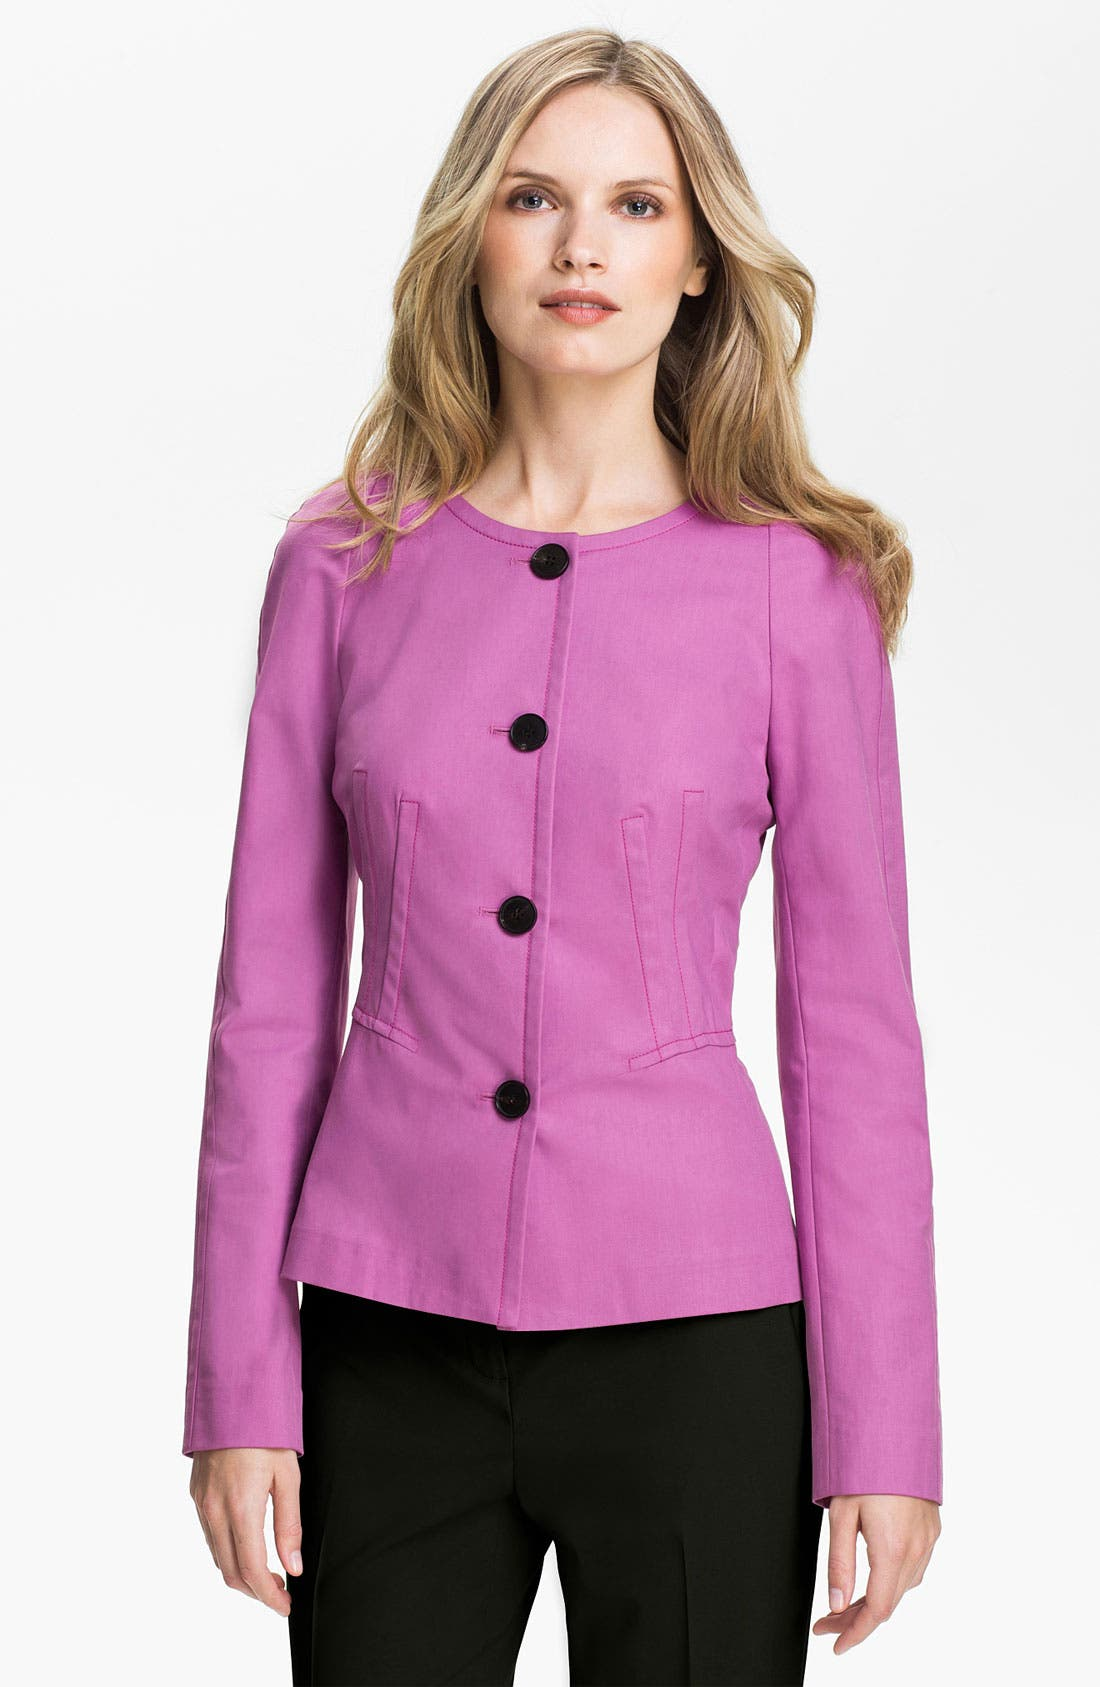 Alternate Image 1 Selected - Lafayette 148 New York 'Cailey Metropolitan Stretch' Jacket